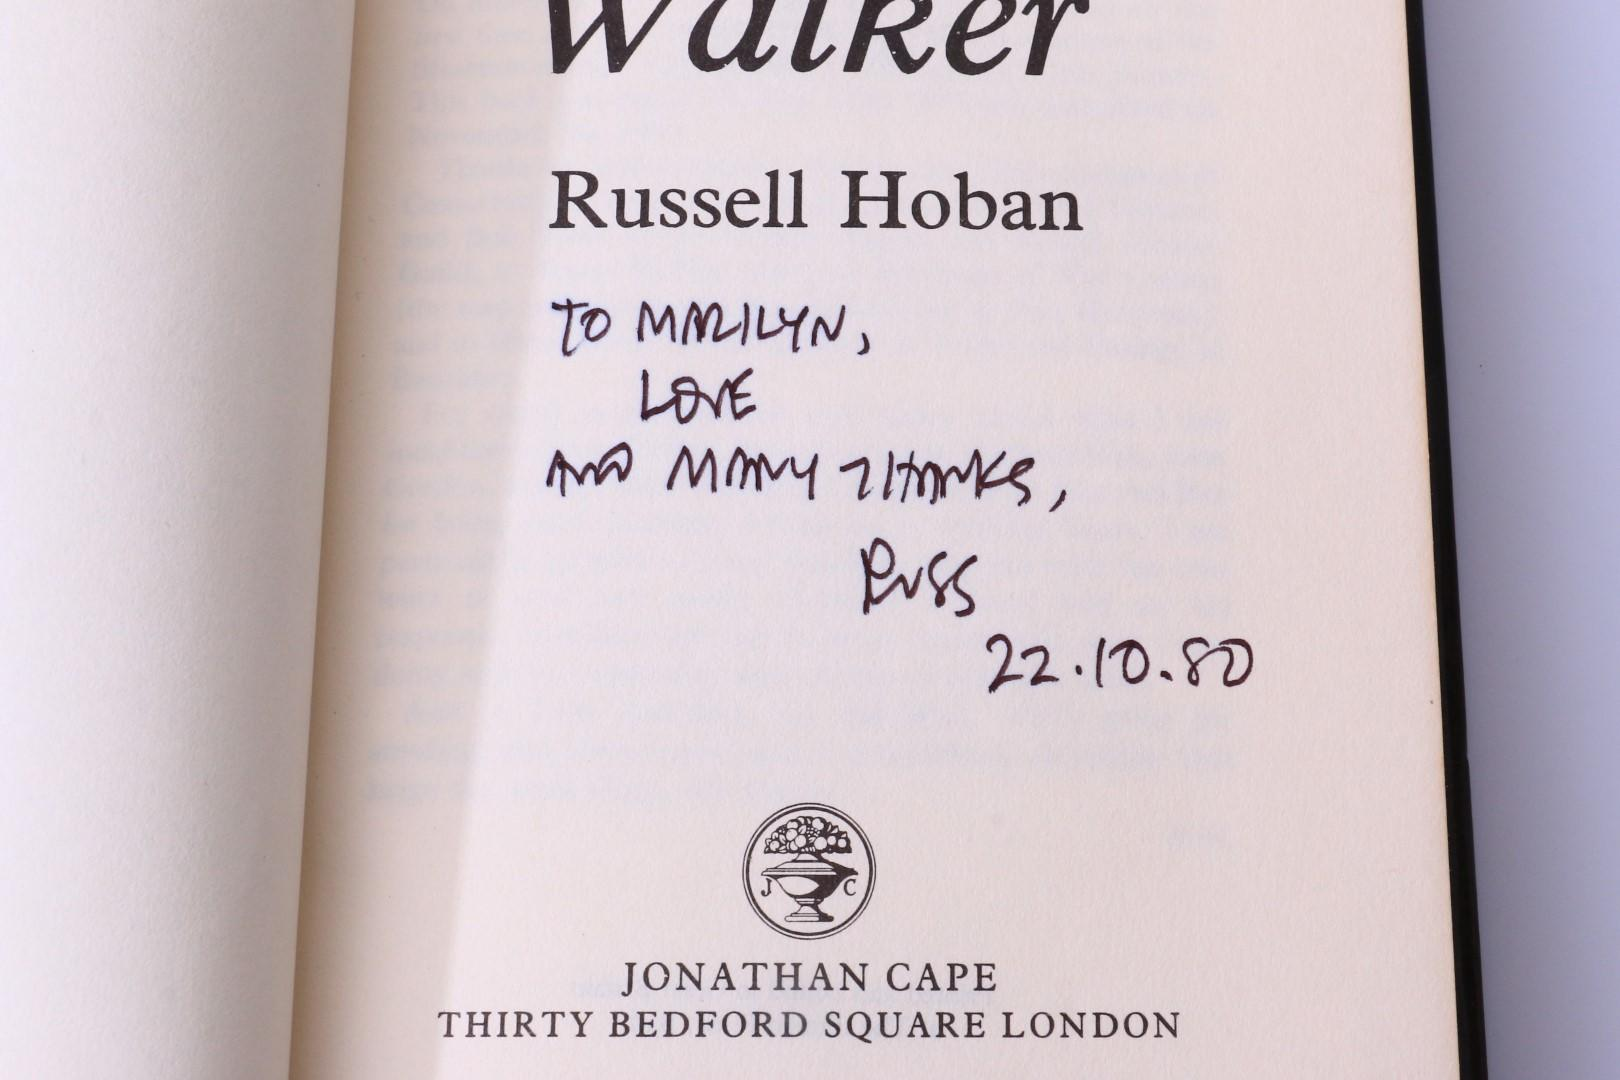 Russell Hoban - Riddley Walker First Edition w/ Proof - Jonathan Cape, 1980, First Edition.  Signed